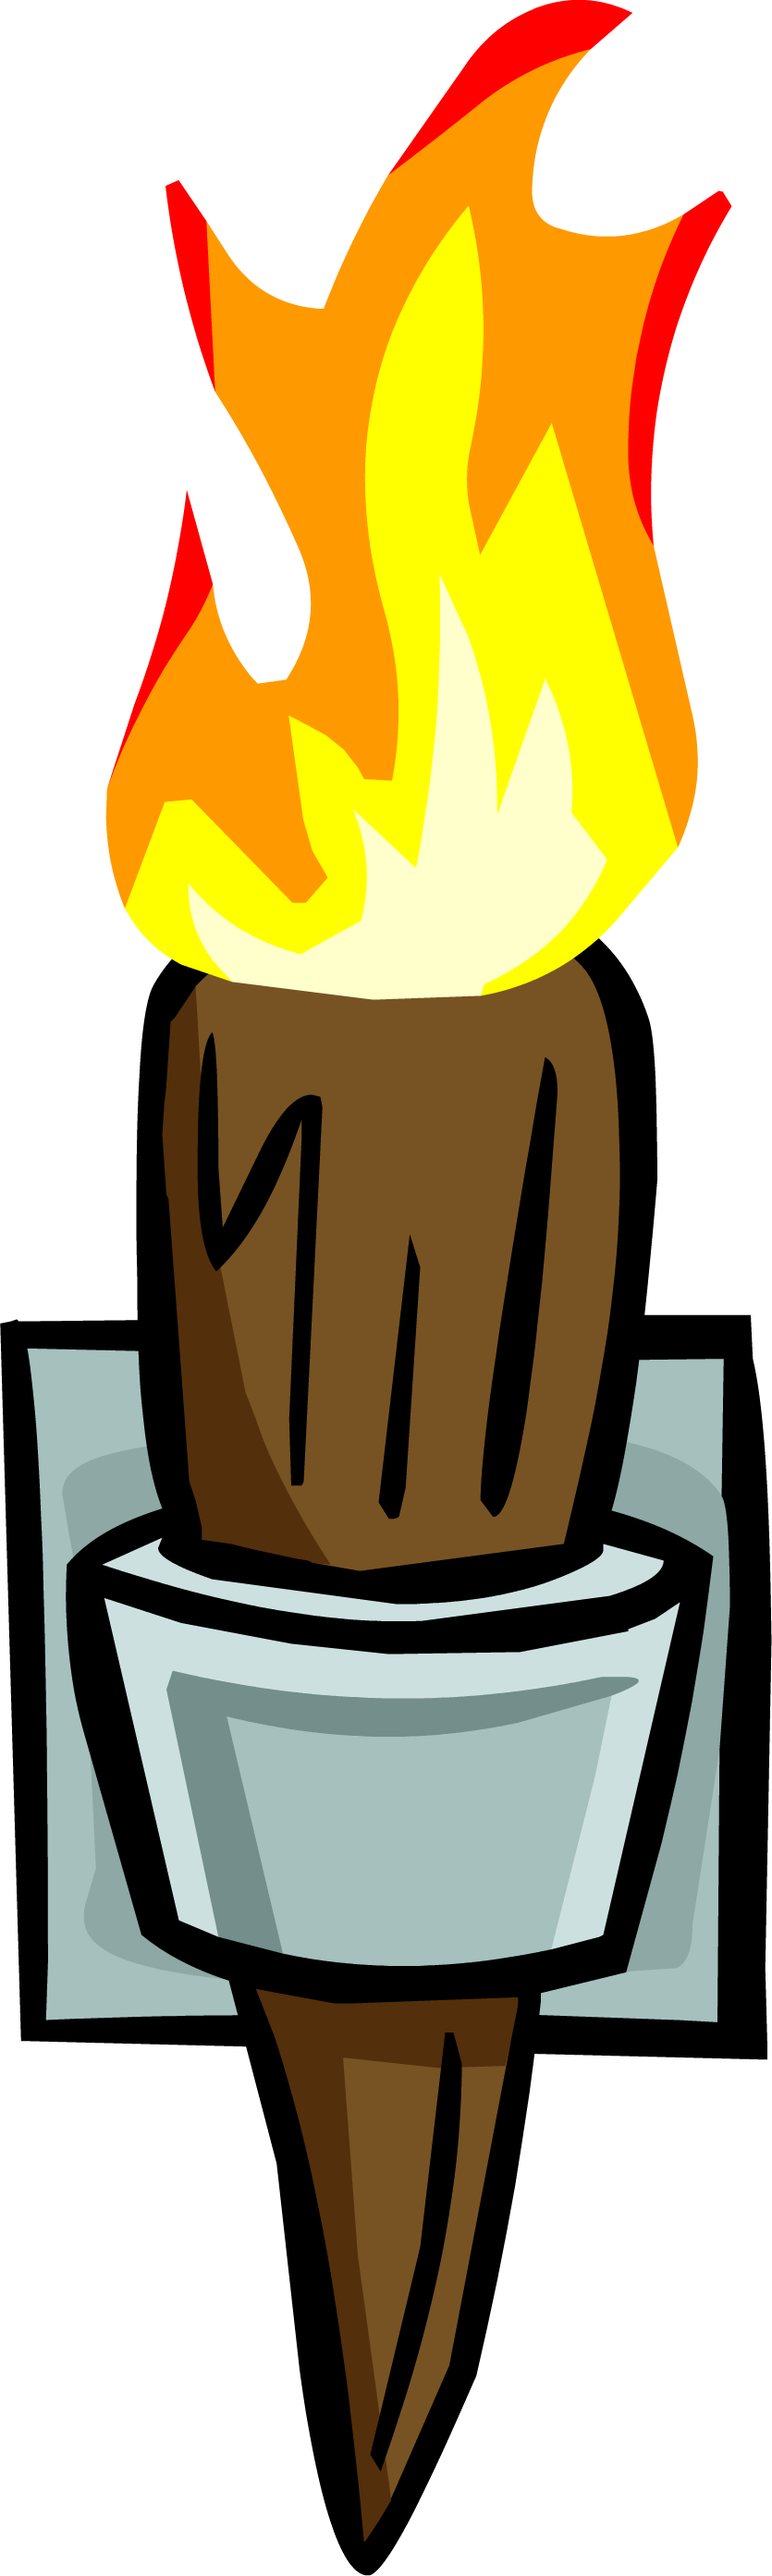 Torch clipart torch book. Image wall sprite png